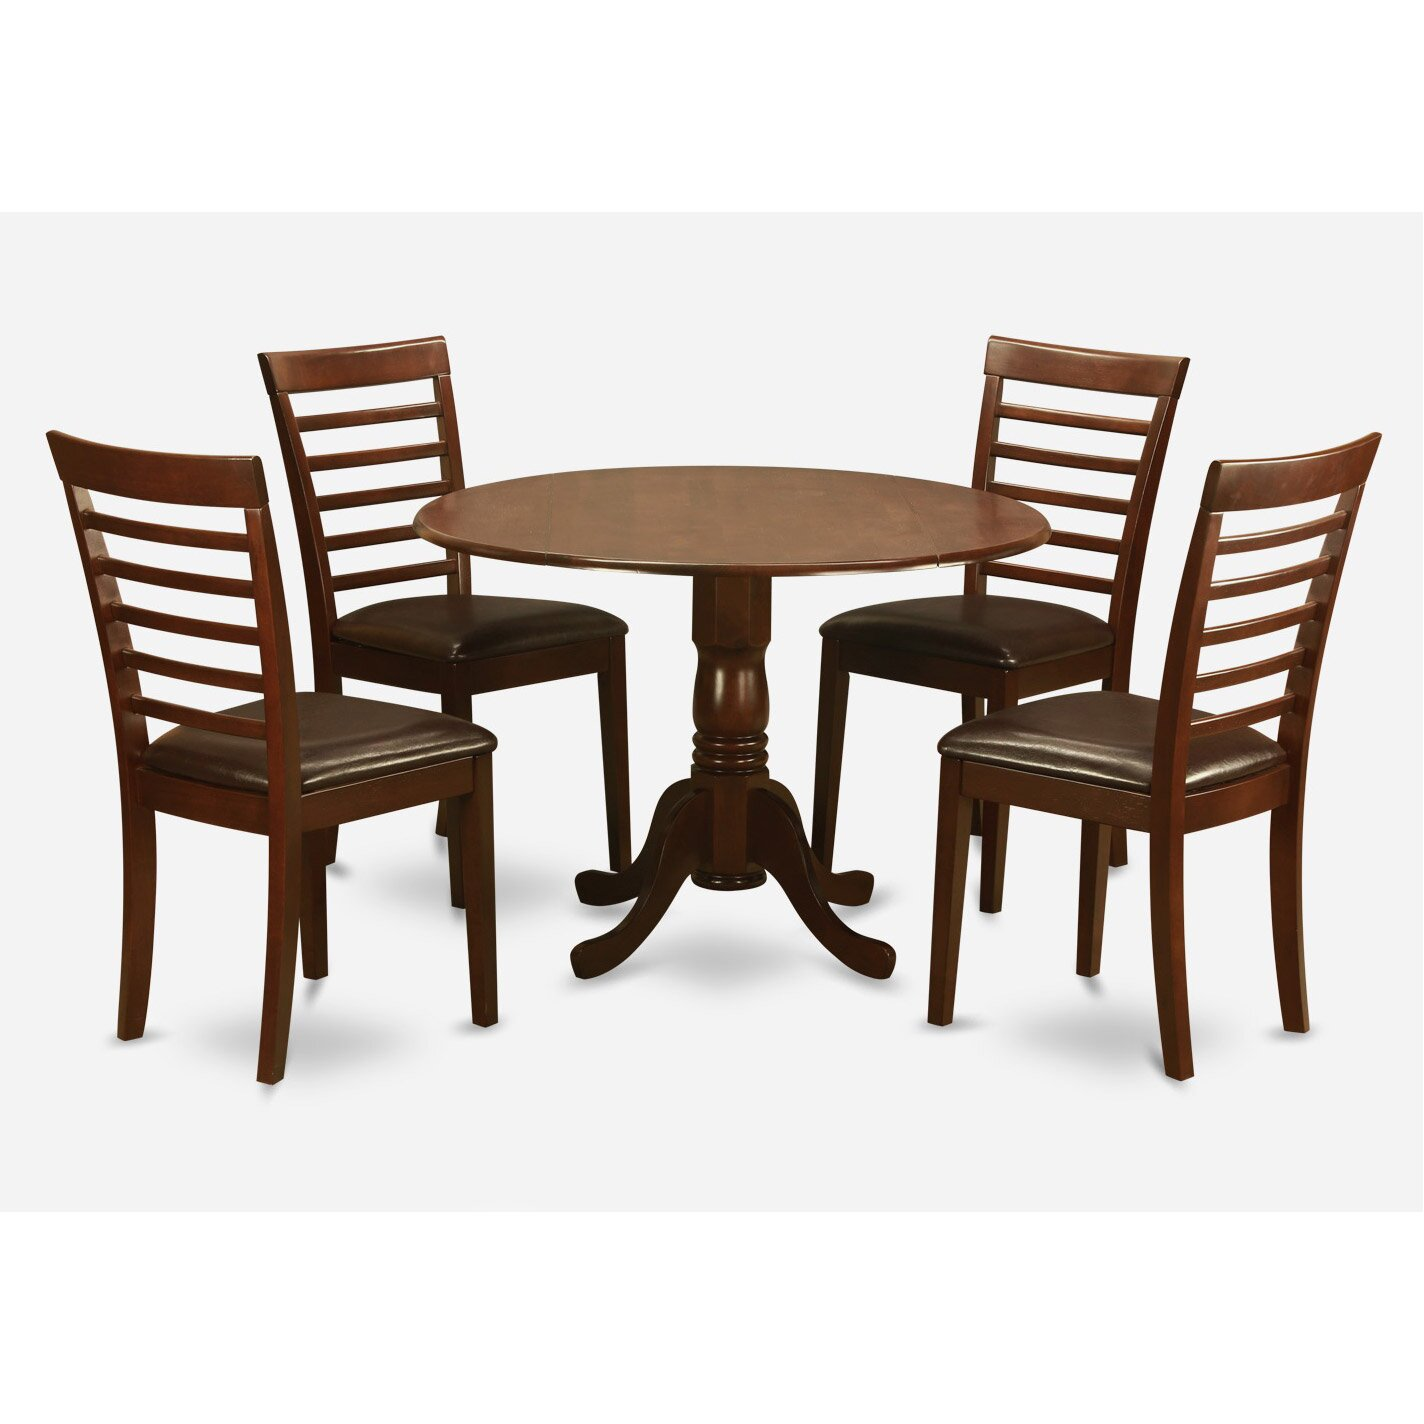 Dublin 5 piece dining set wayfair for Small kitchen table sets for 4